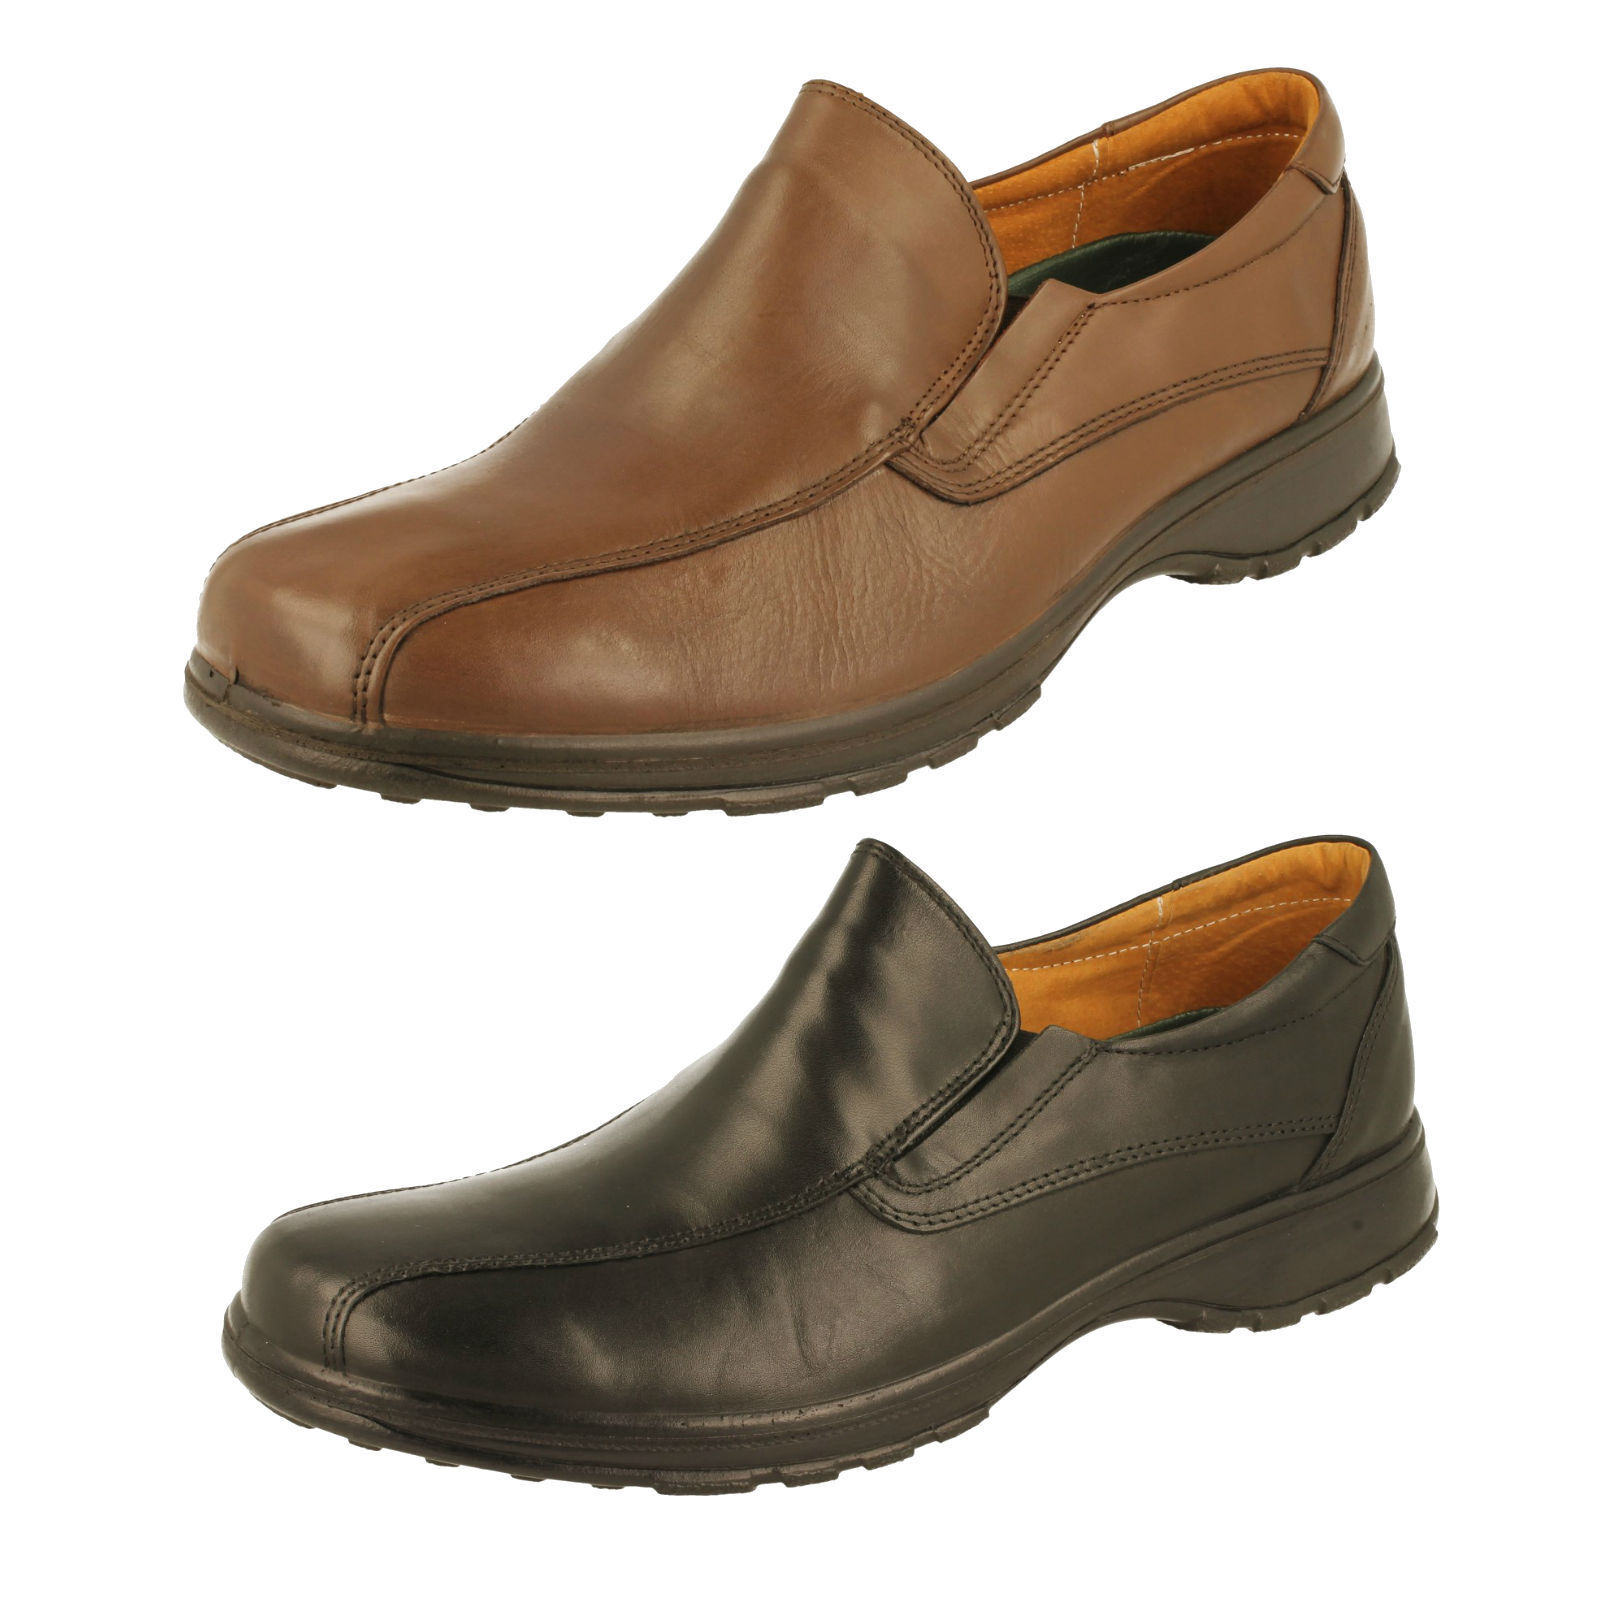 Mens DB Slip On Shoes - Nelson